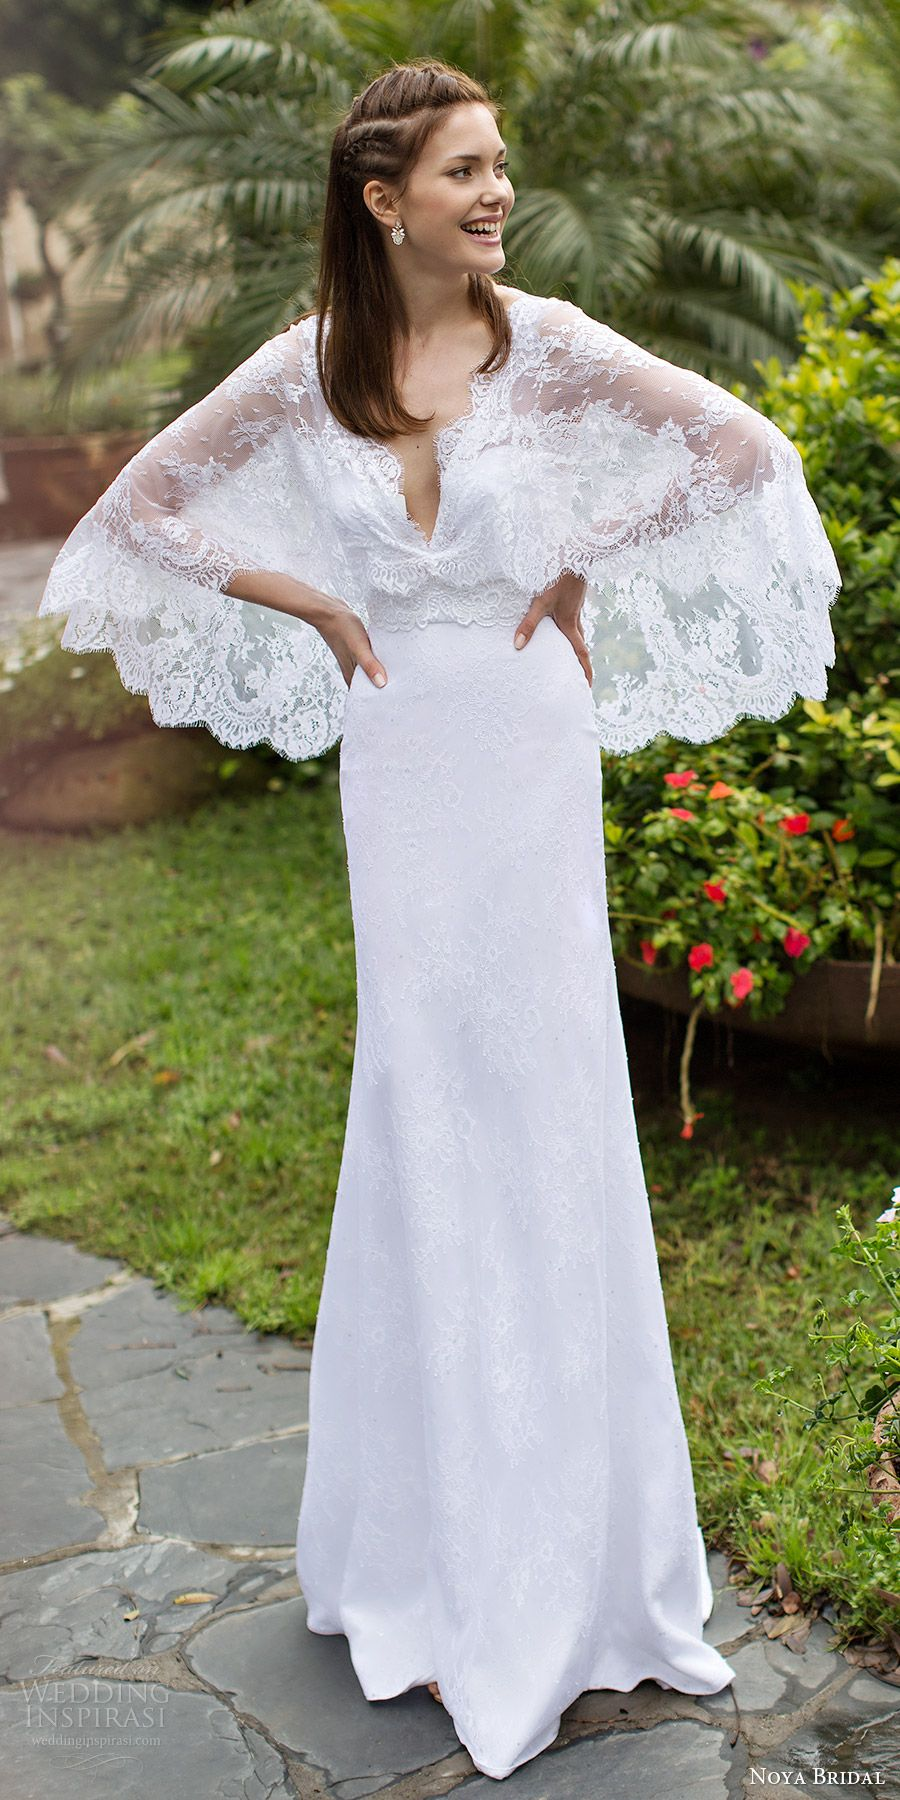 Noya bridal ucariaud collection wedding dresses flutter sleeve lace